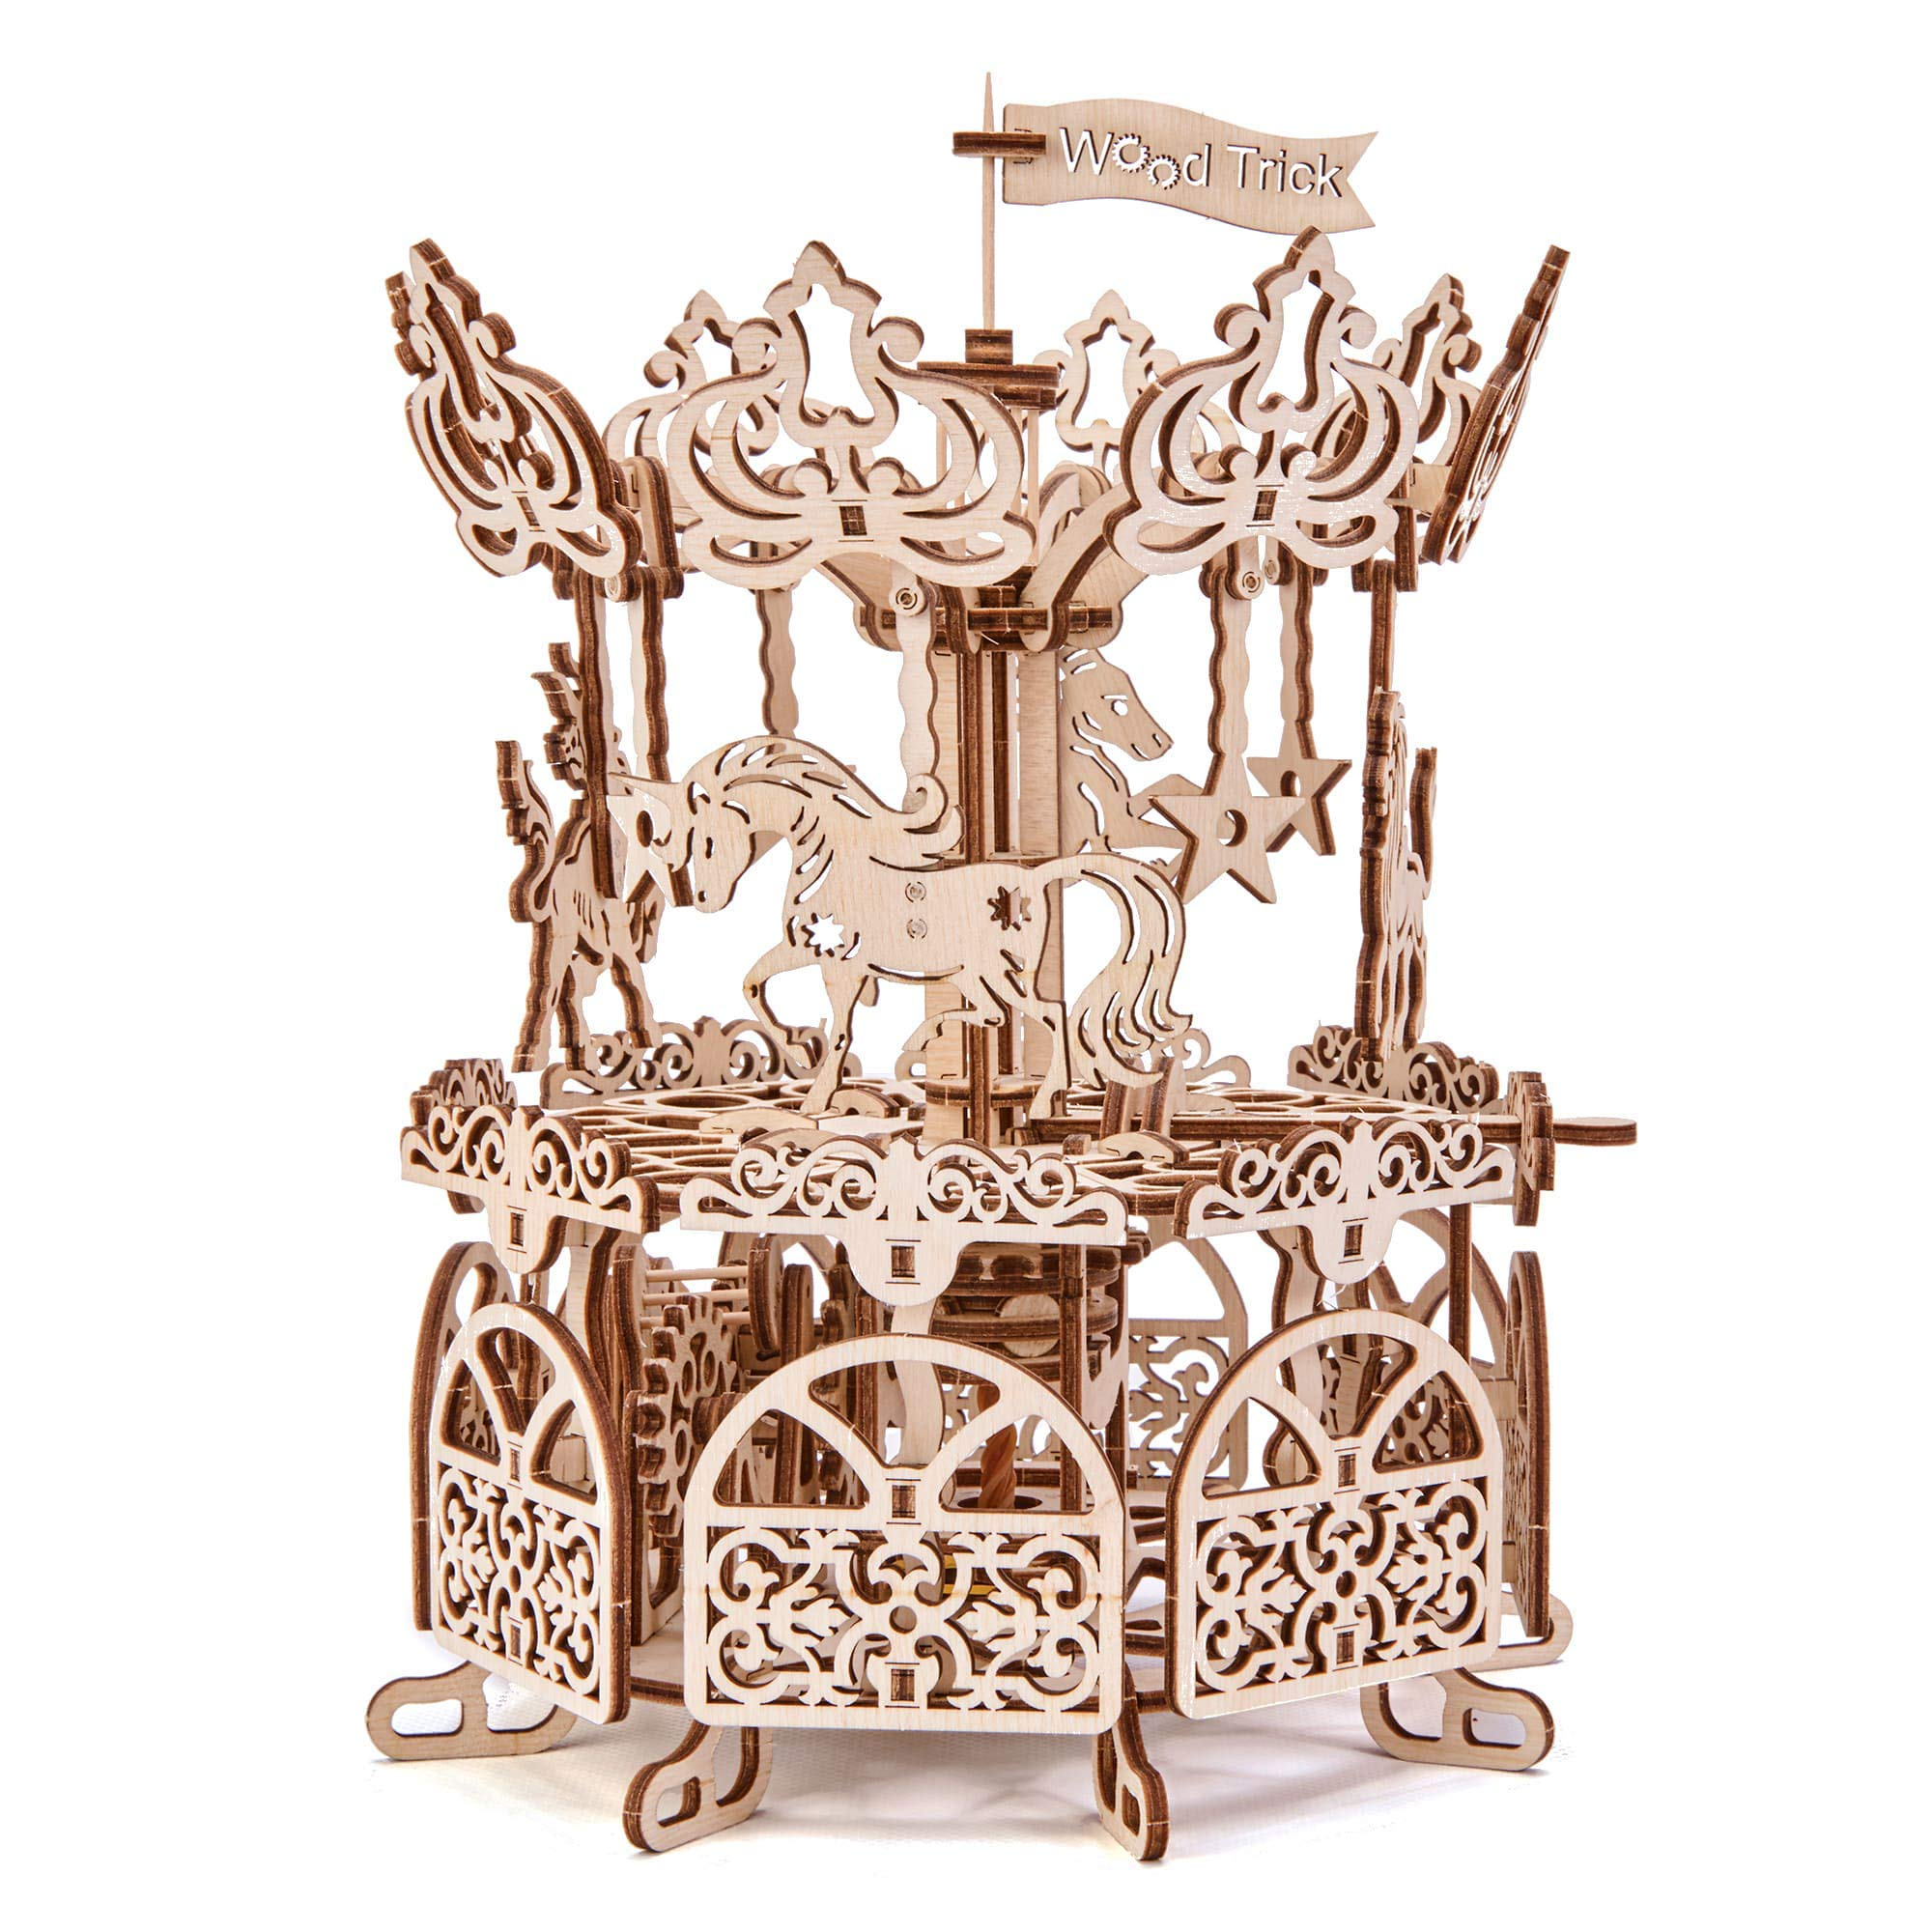 Wood Trick Carousel Merry Go Round Mechanical